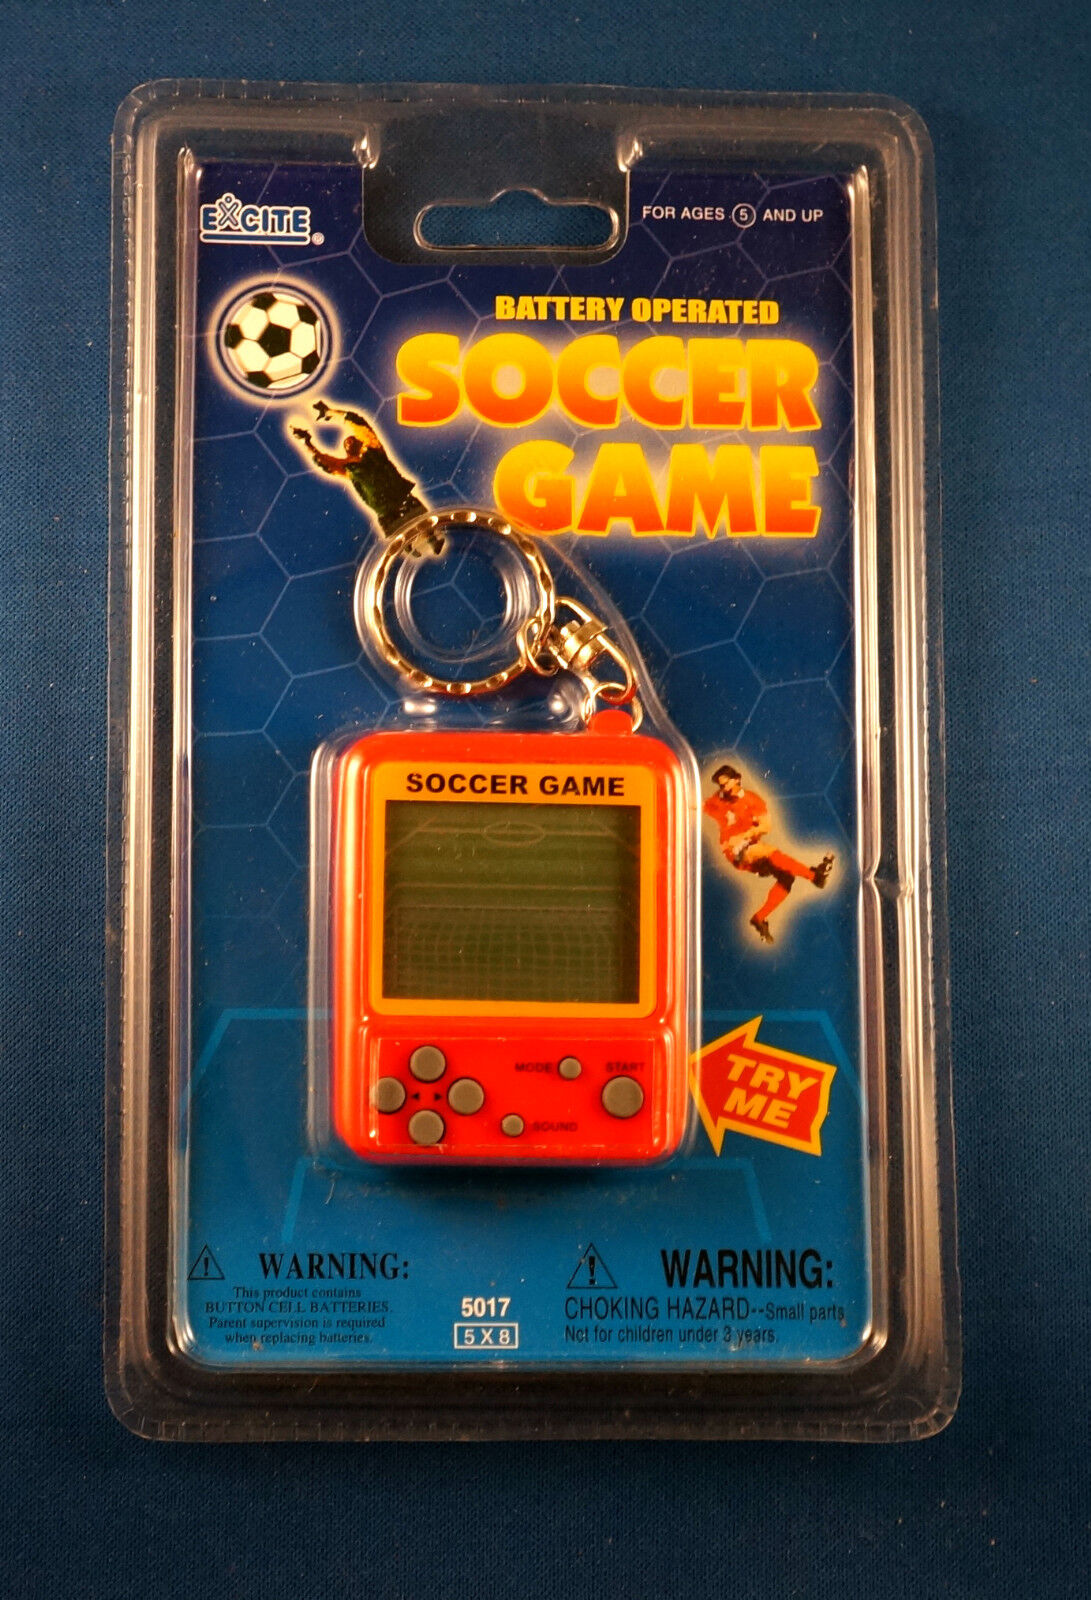 NEW EXCITE SOCCER LCD TRAVEL KEYCHAIN GAME ELECTRONIC HANDHELD KEY CHAIN RING